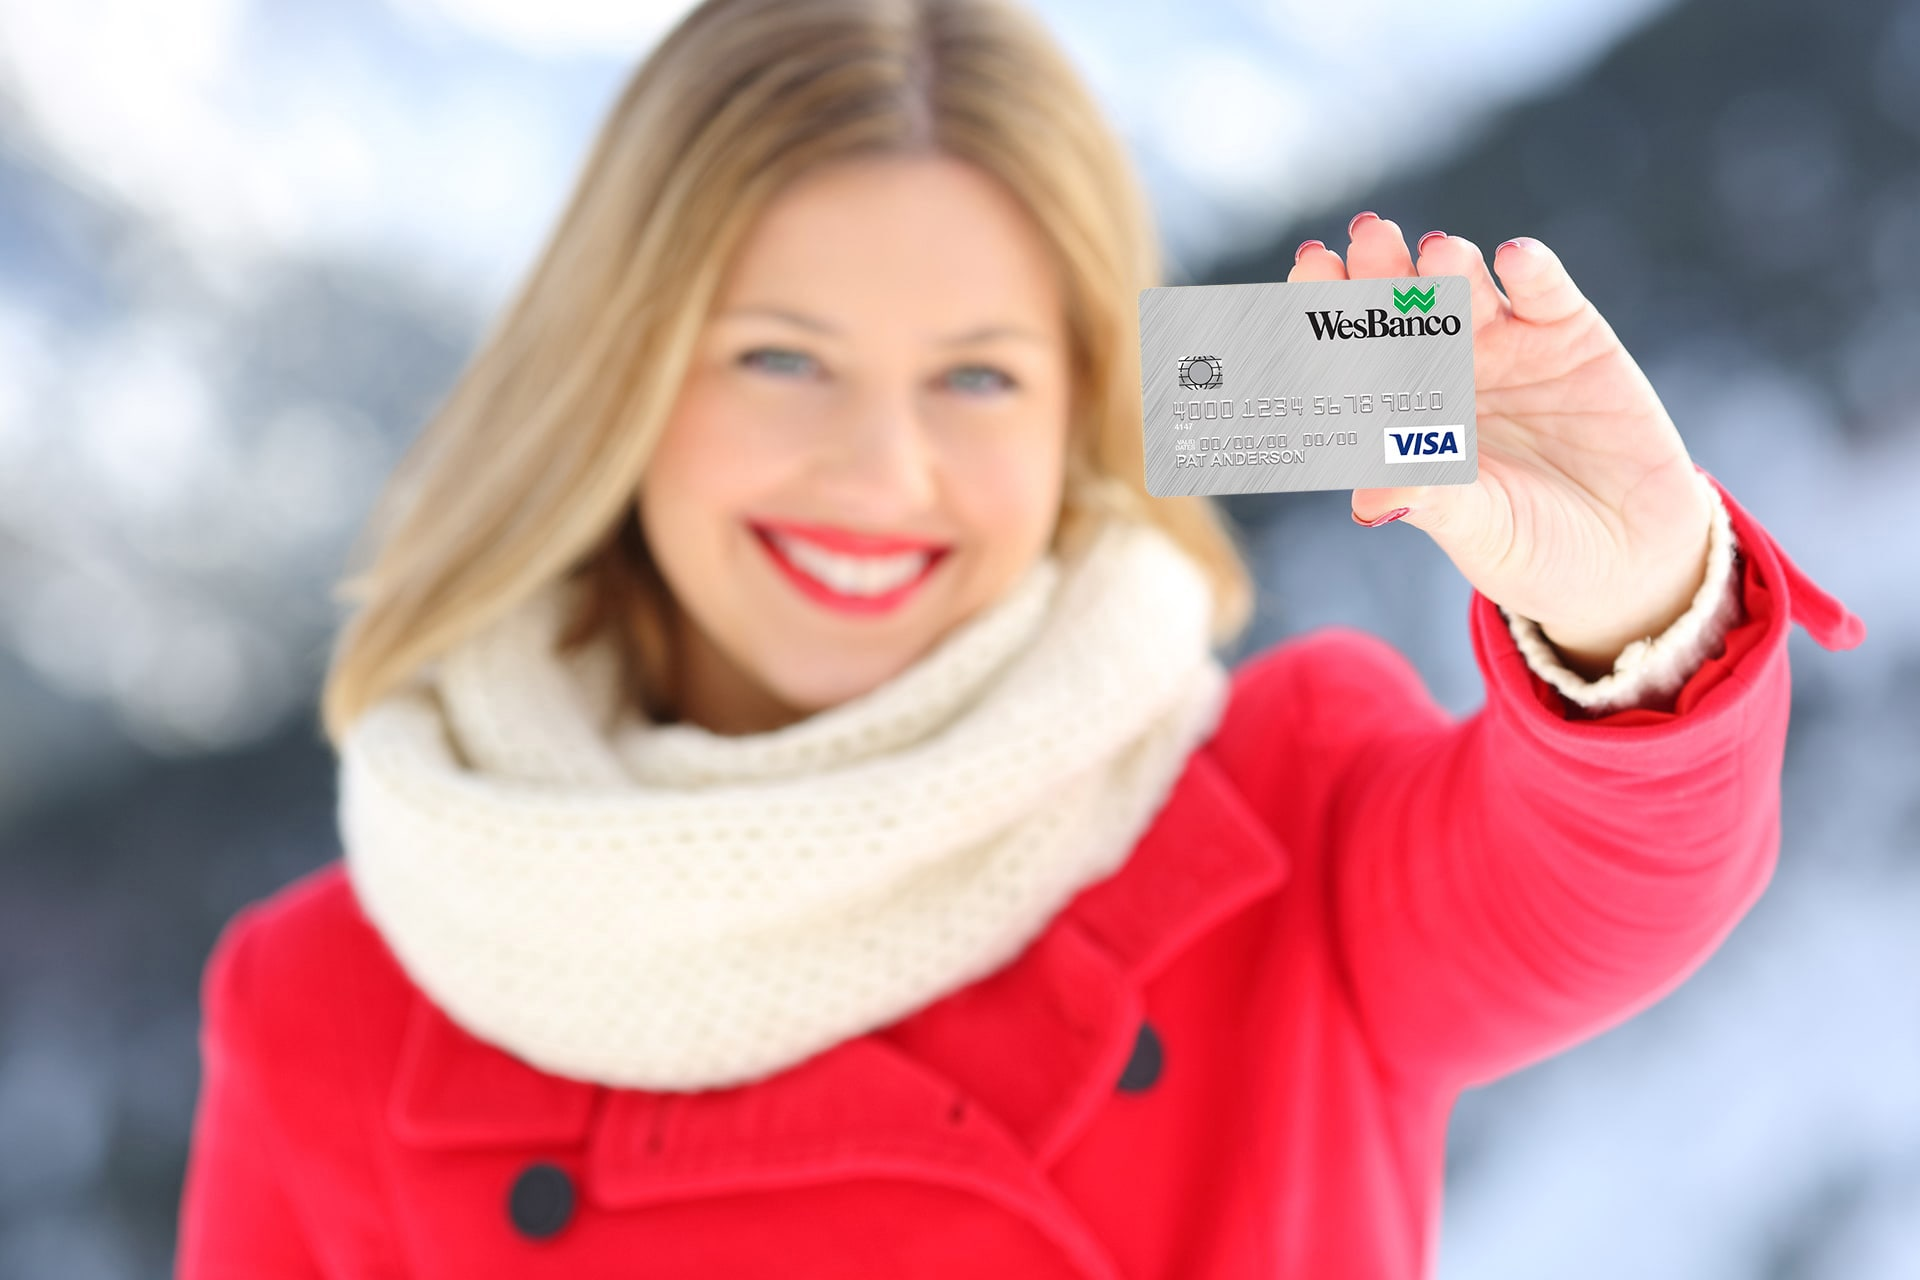 Smiling blonde woman in a red winter coat with white trim excitedly holds up a Personal WesBanco Credit Card